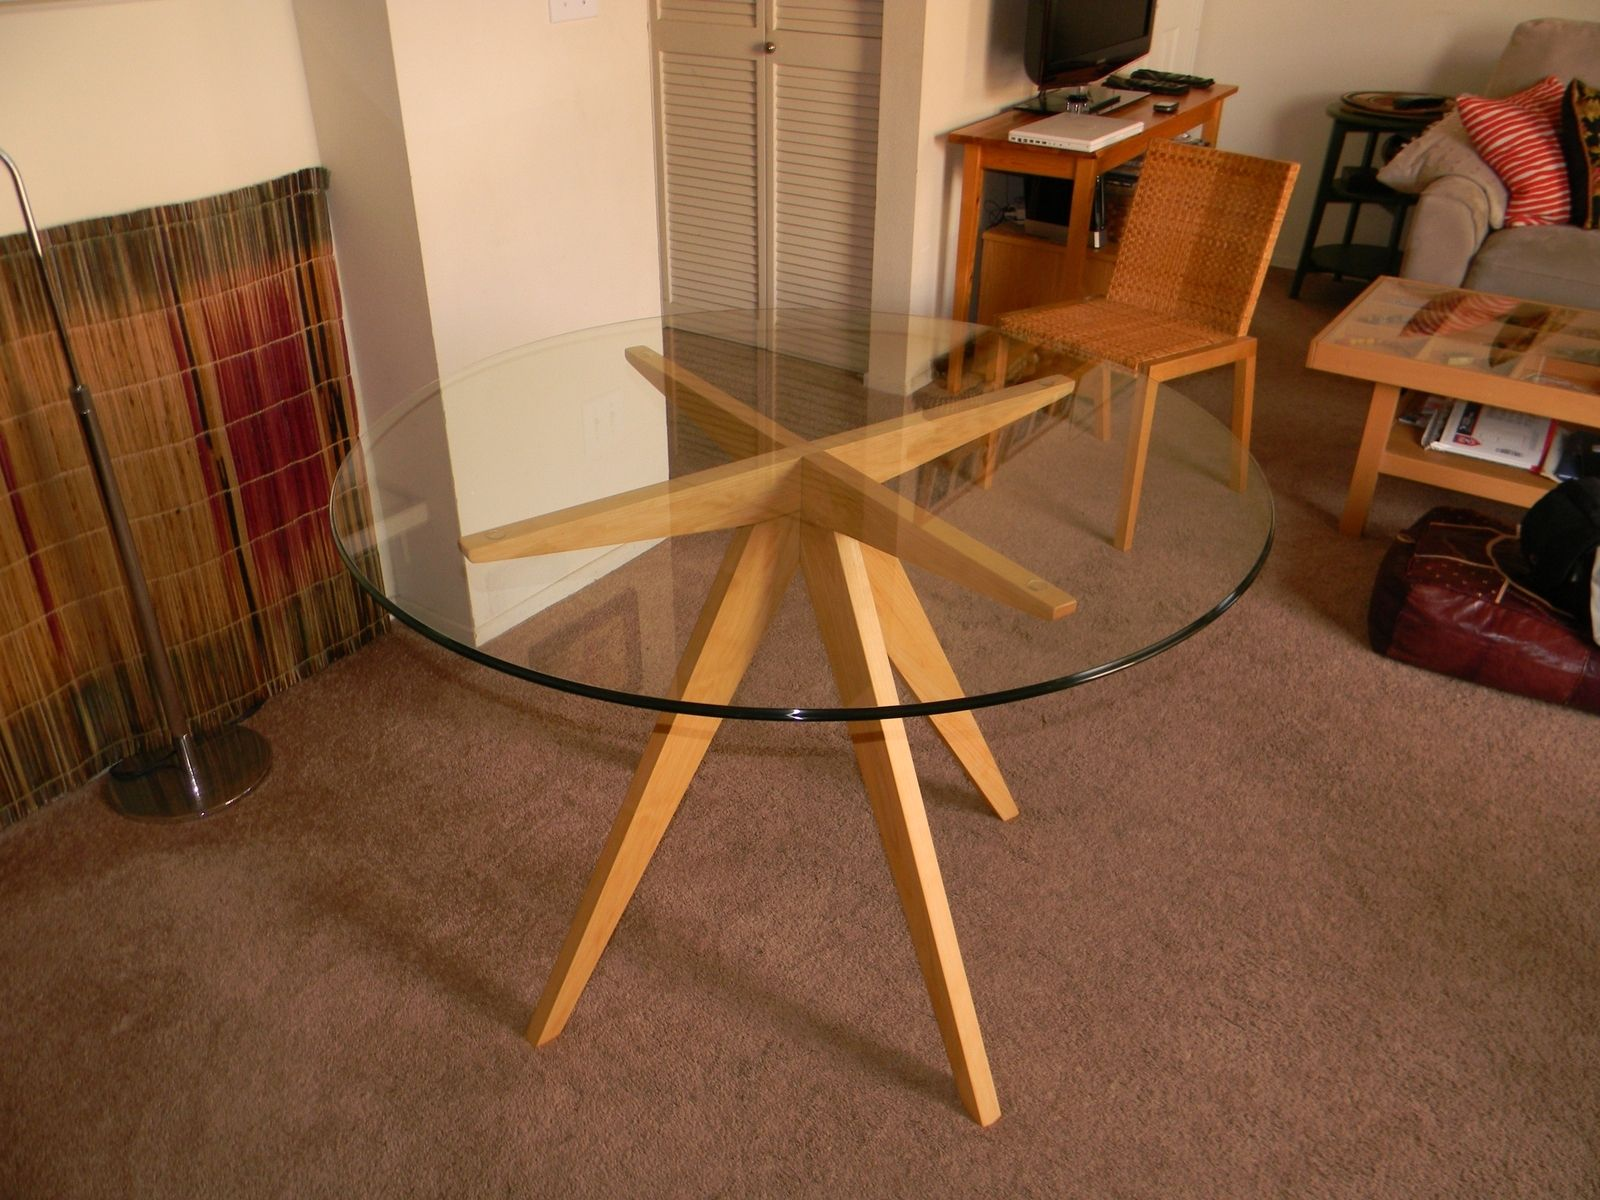 Ibi s Table Base For Glass Top Dining Table. Modern Dining Tables   Contemporary Dining Room Tables